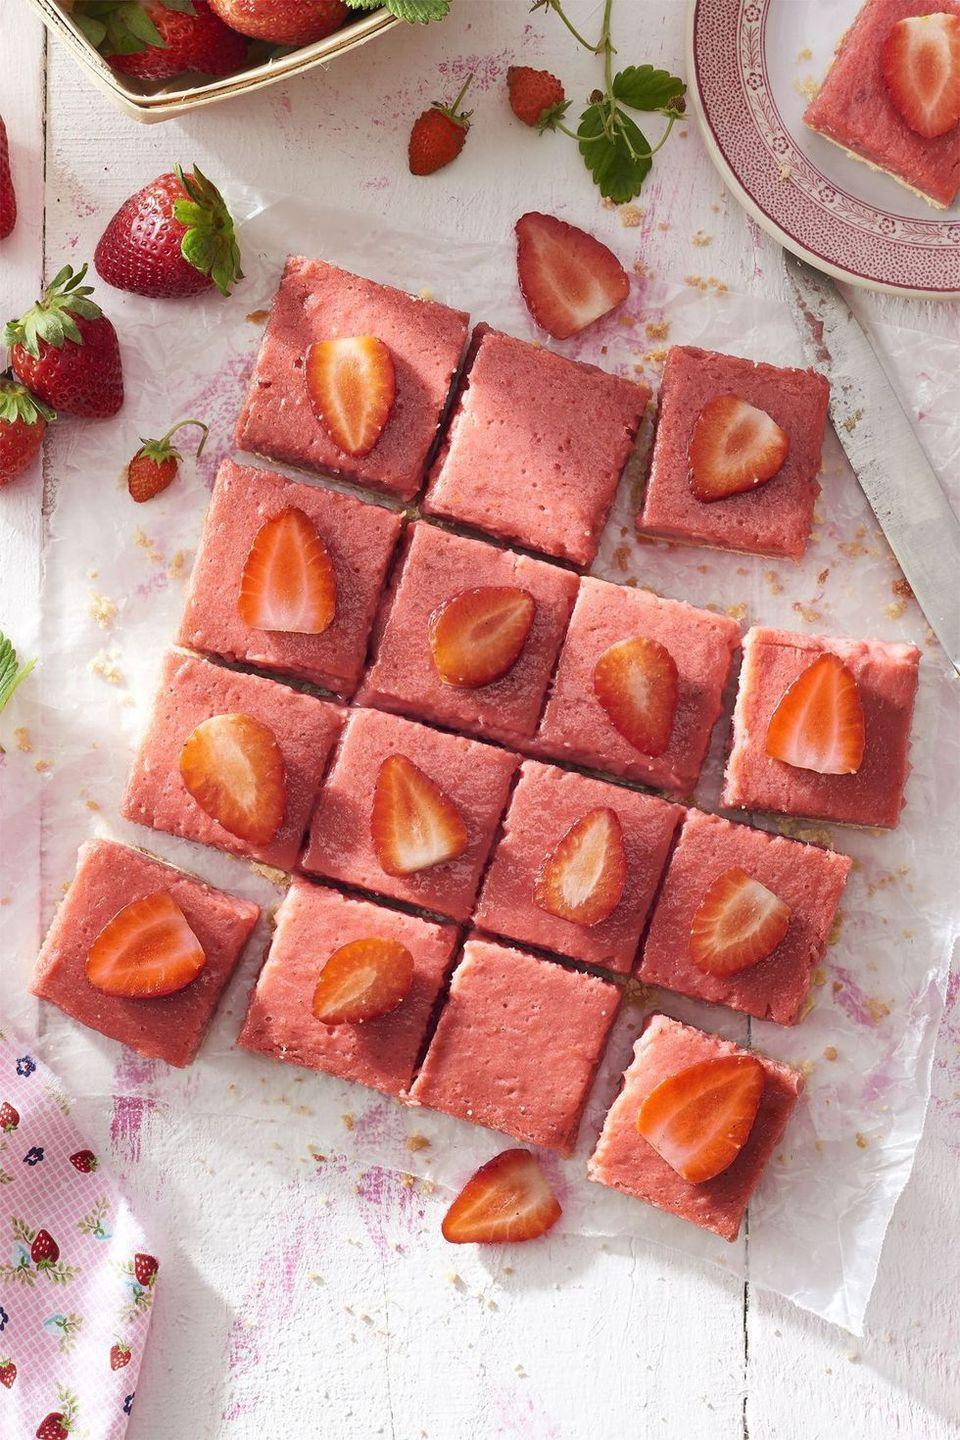 """<p>It's finally time to give rhubarb it's time to shine — and this sweet treat is the best place to start. </p><p><em><a href=""""https://www.countryliving.com/food-drinks/recipes/a41984/strawberry-rhubarb-shortbread-bars-recipe/"""" rel=""""nofollow noopener"""" target=""""_blank"""" data-ylk=""""slk:Get the recipe from Country Living »"""" class=""""link rapid-noclick-resp"""">Get the recipe from Country Living »</a></em></p>"""